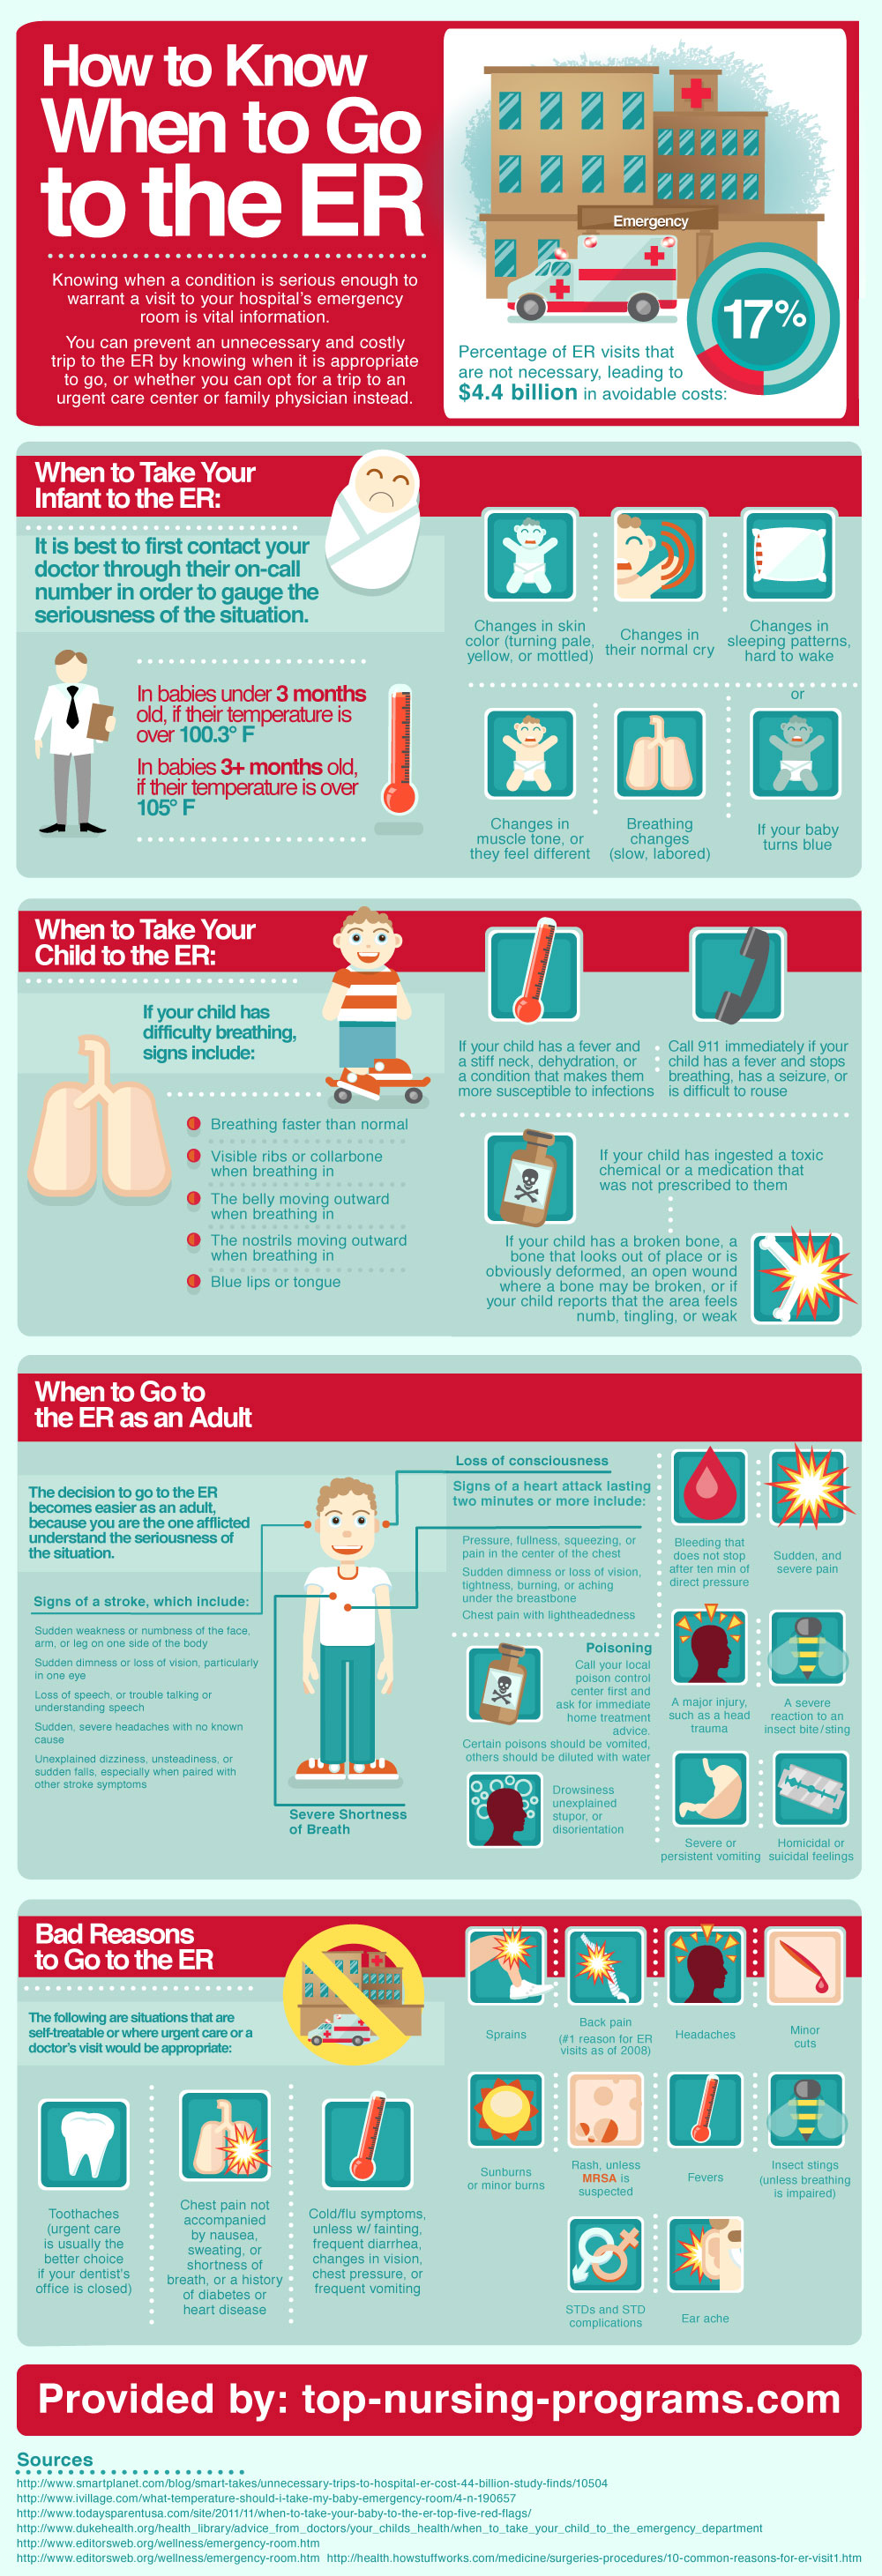 how-to-know-when-to-go-to-the-emergency-room_5098e59ef2782